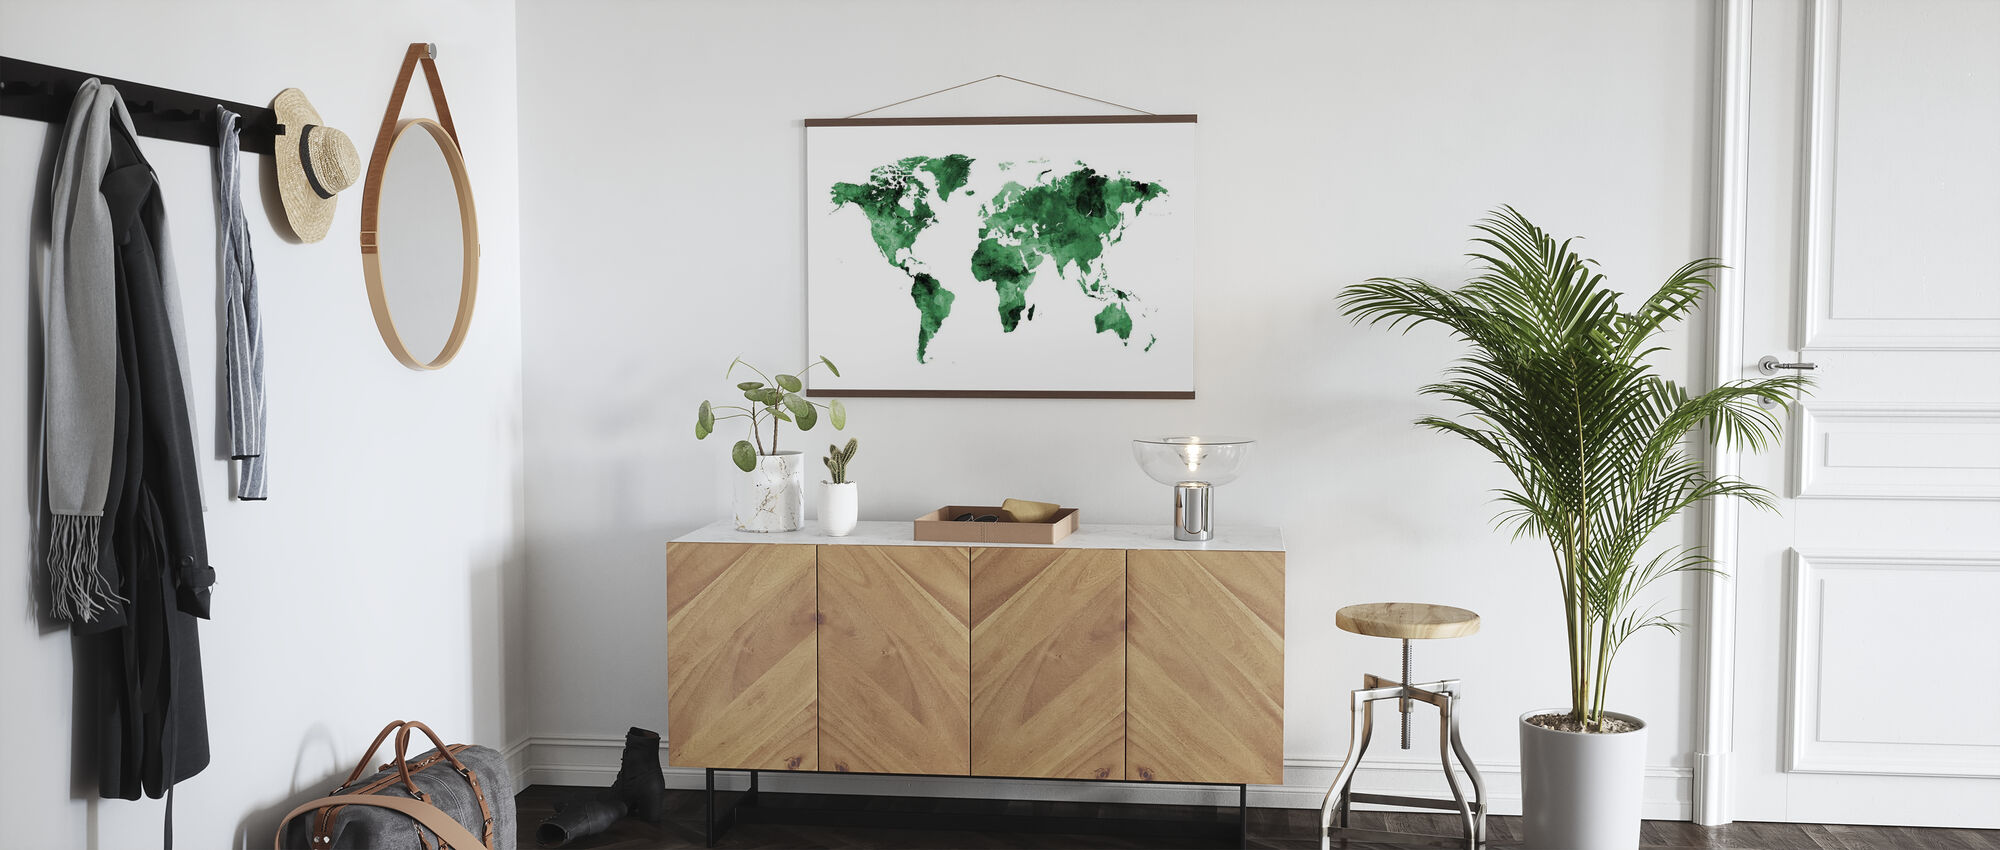 Watercolour World Map Green - Poster - Hallway